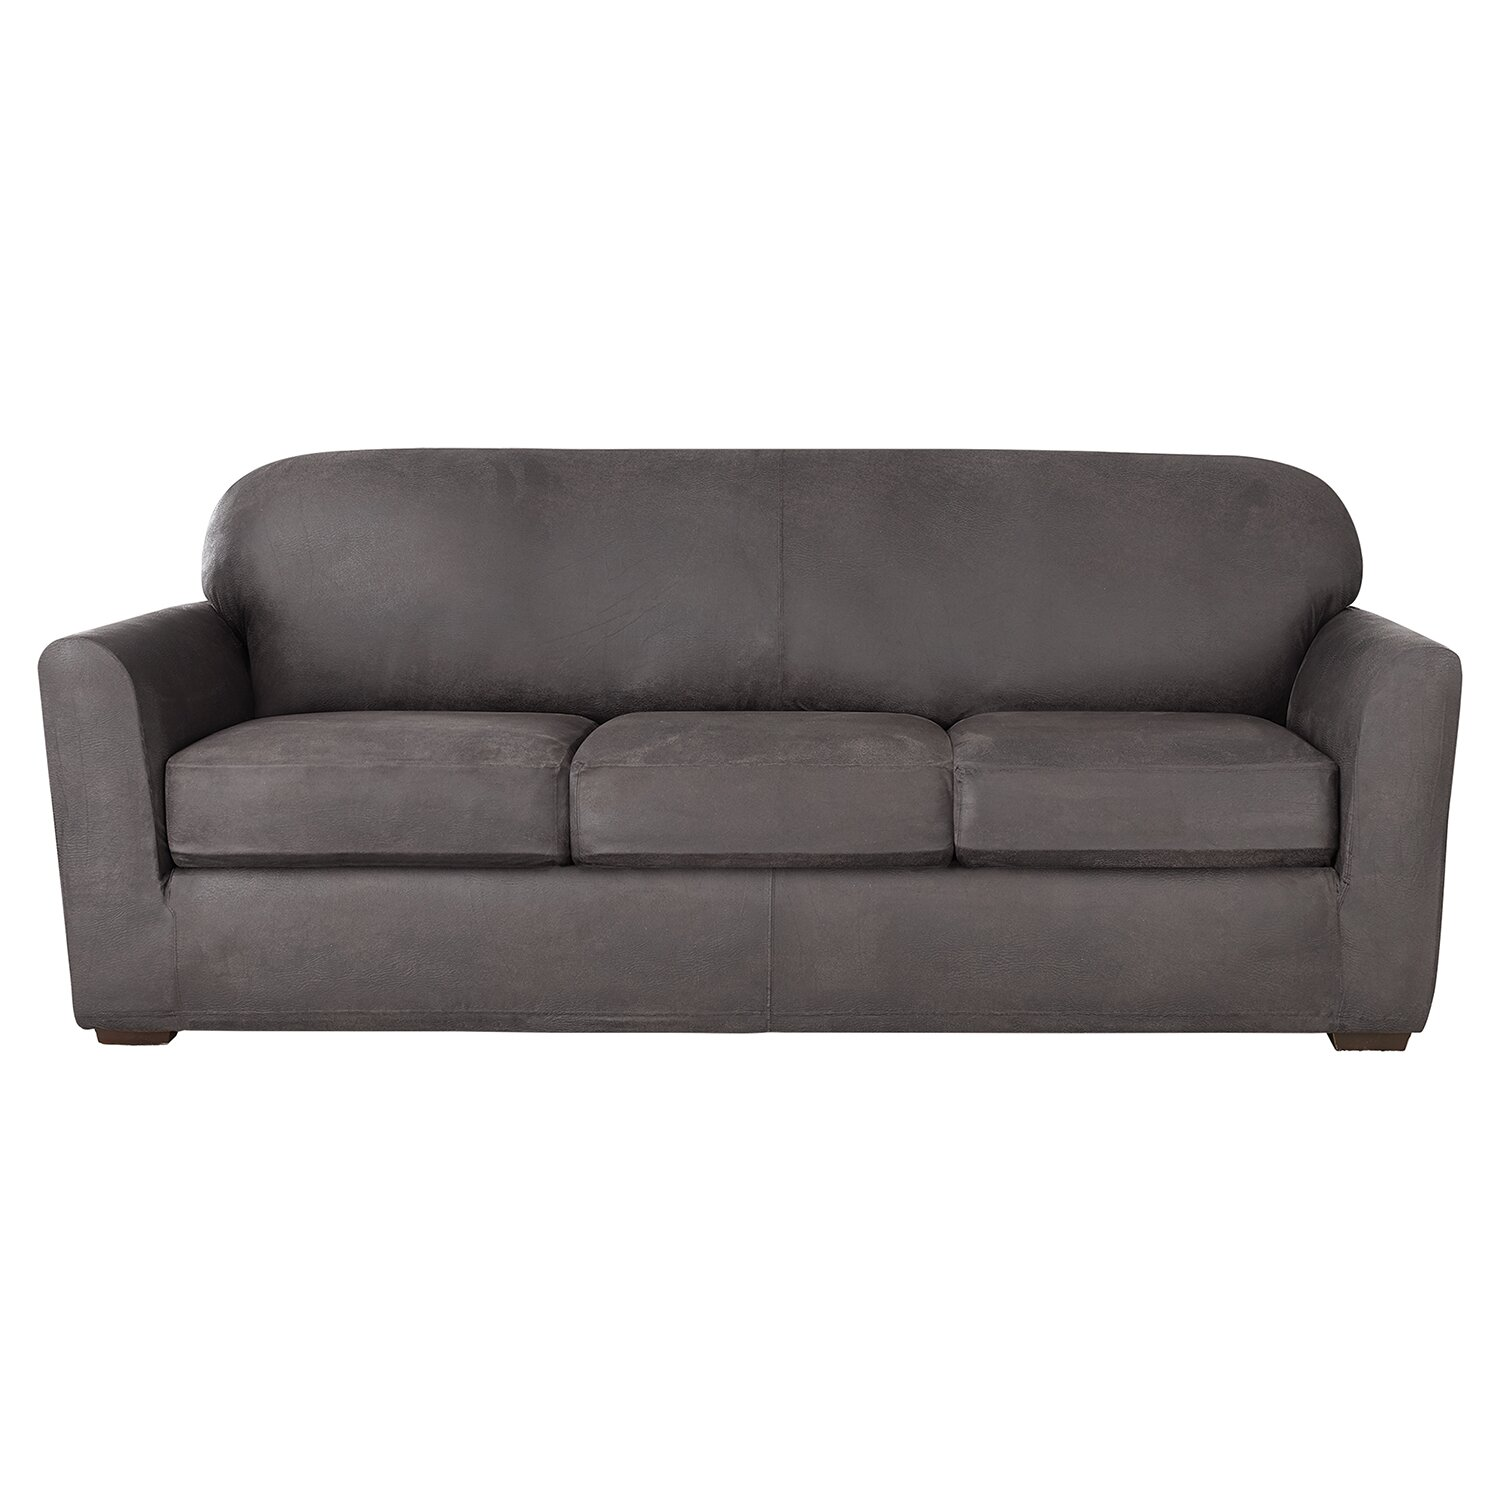 Sofa Stretch Covers: Sure Fit Ultimate Stretch Sofa Slipcover & Reviews